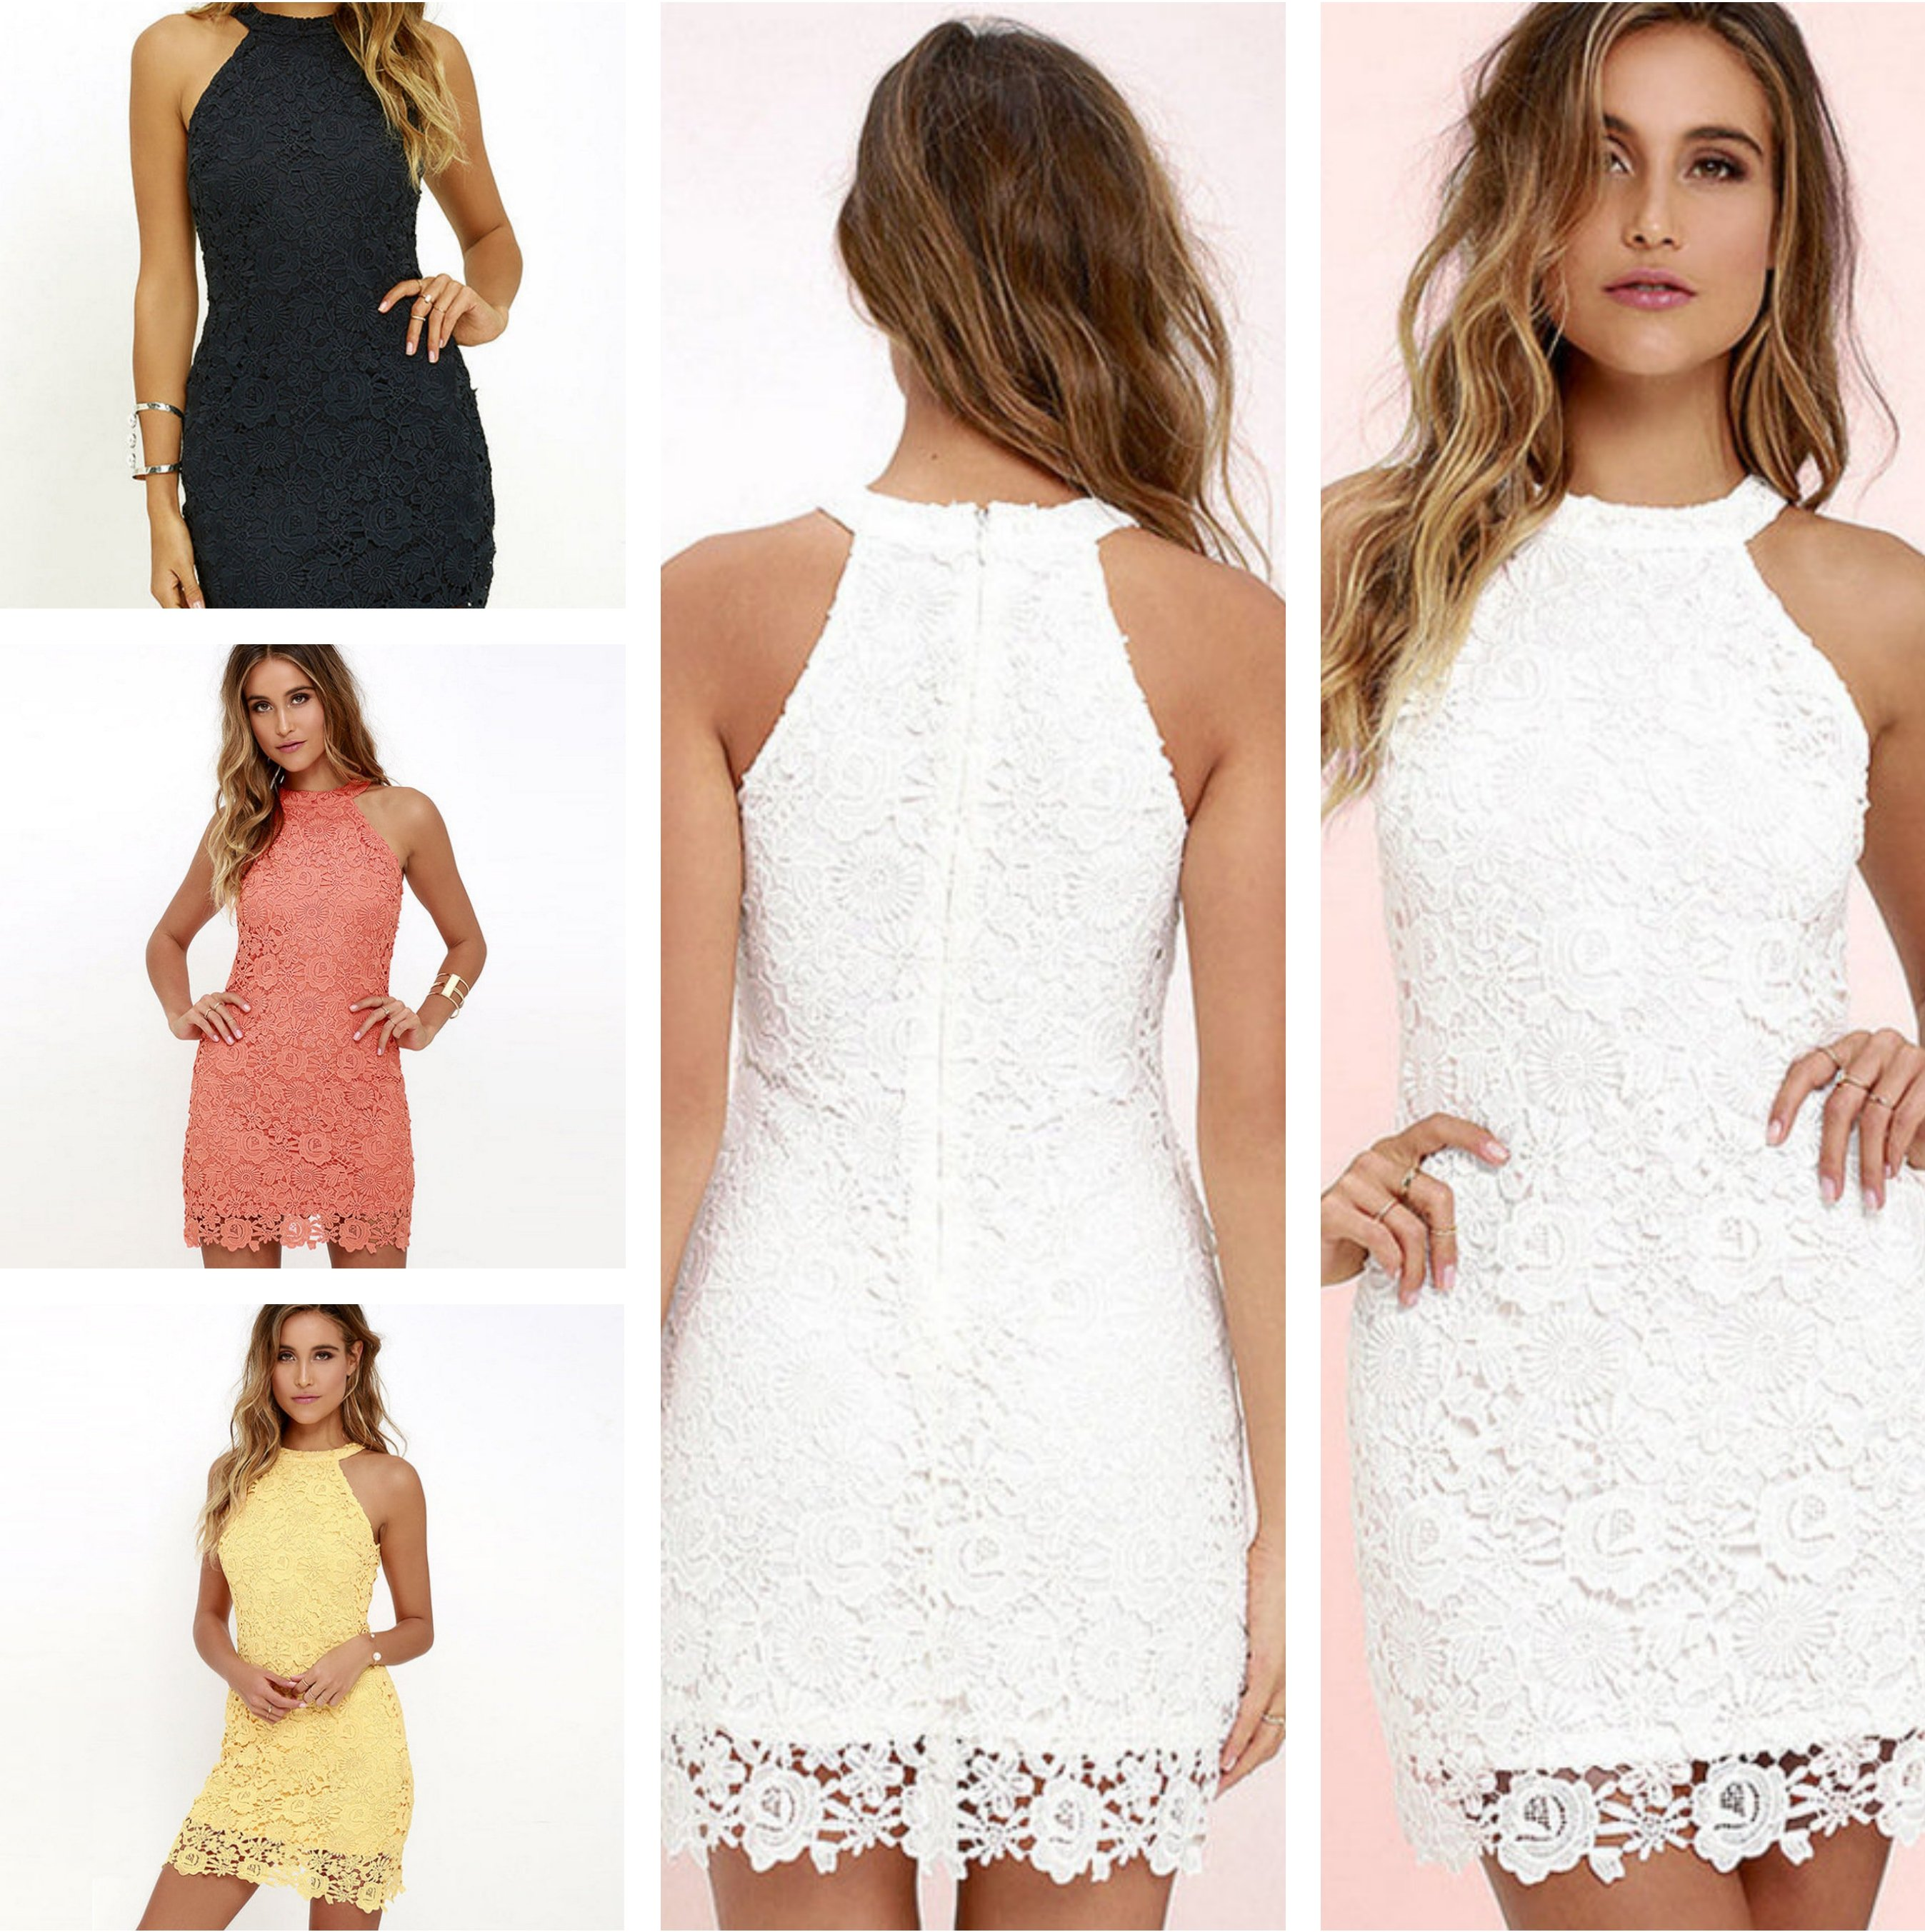 6503fb5d8003e Stunning, Women Elegant Sexy Neckholder Sleeveless Mesh Bodycon Lace Mini  Dress, For Wedding, Nightclub Pretty Women, So Bling! from Chyclothing ...